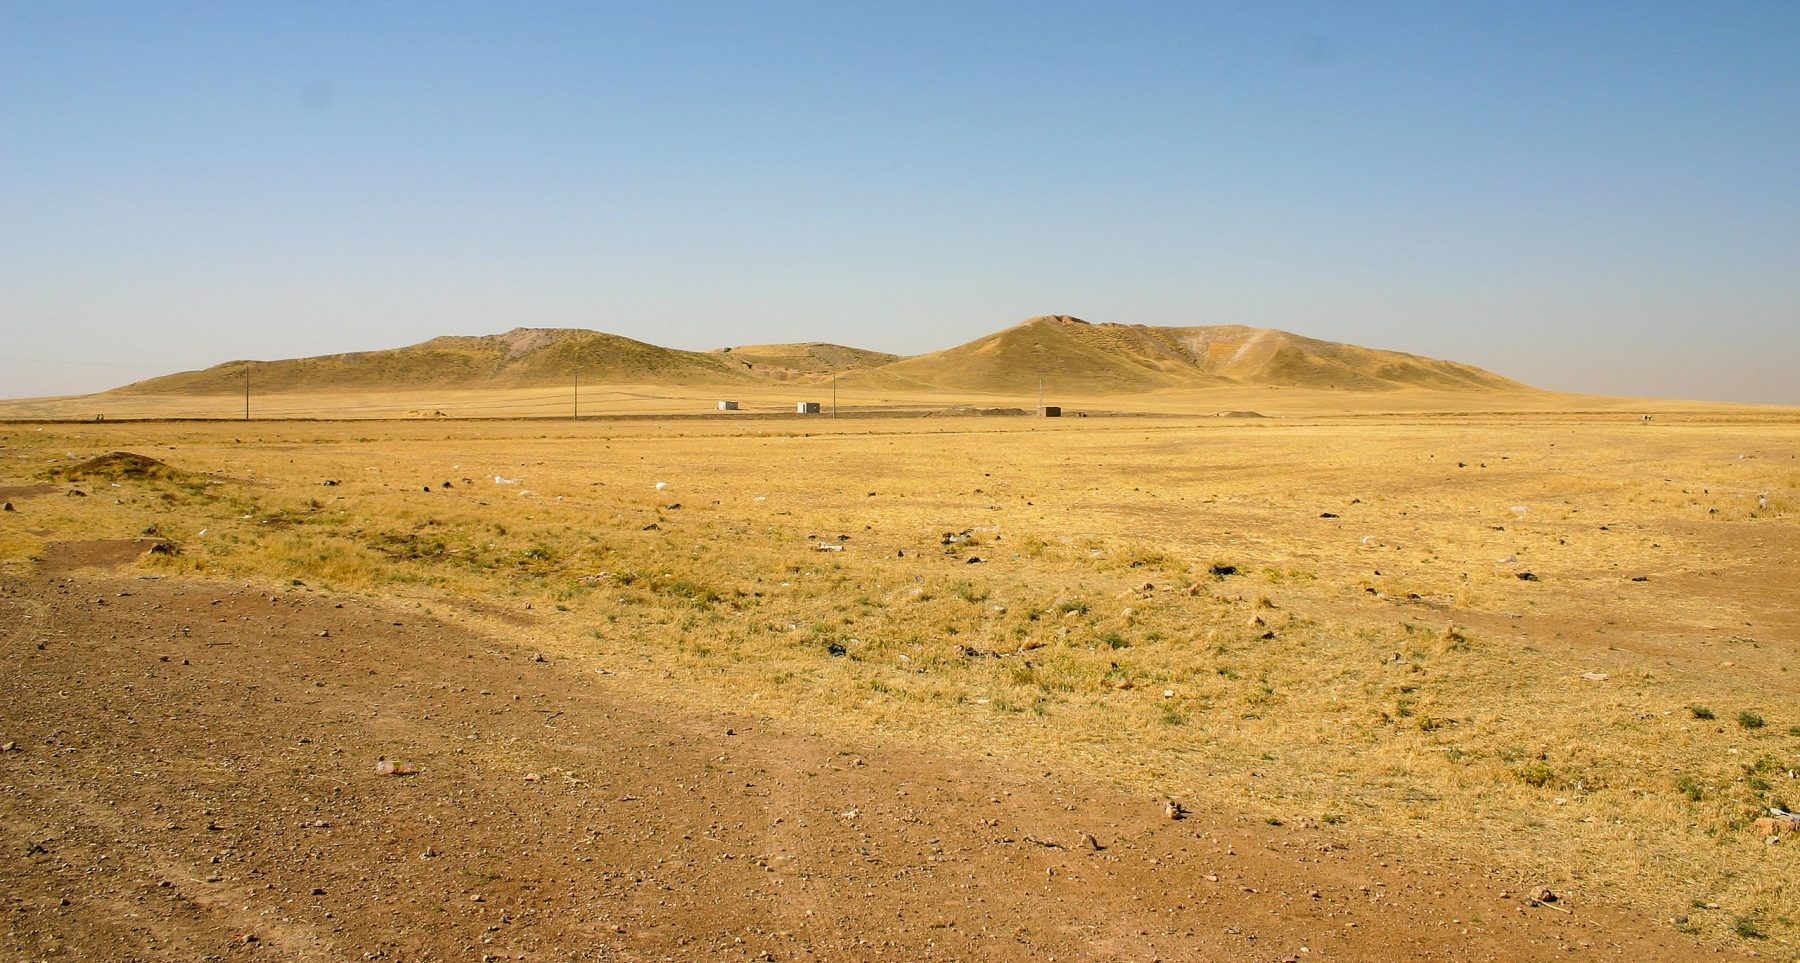 An image of Tell Brak. Would you say this is an ancient city? Probably not, but this is a look at the archaeological site from a distance. Thousands of years of history are buried beneath the surface. Image Credit: Wikimedia Commons / CC BY-SA 4.0.